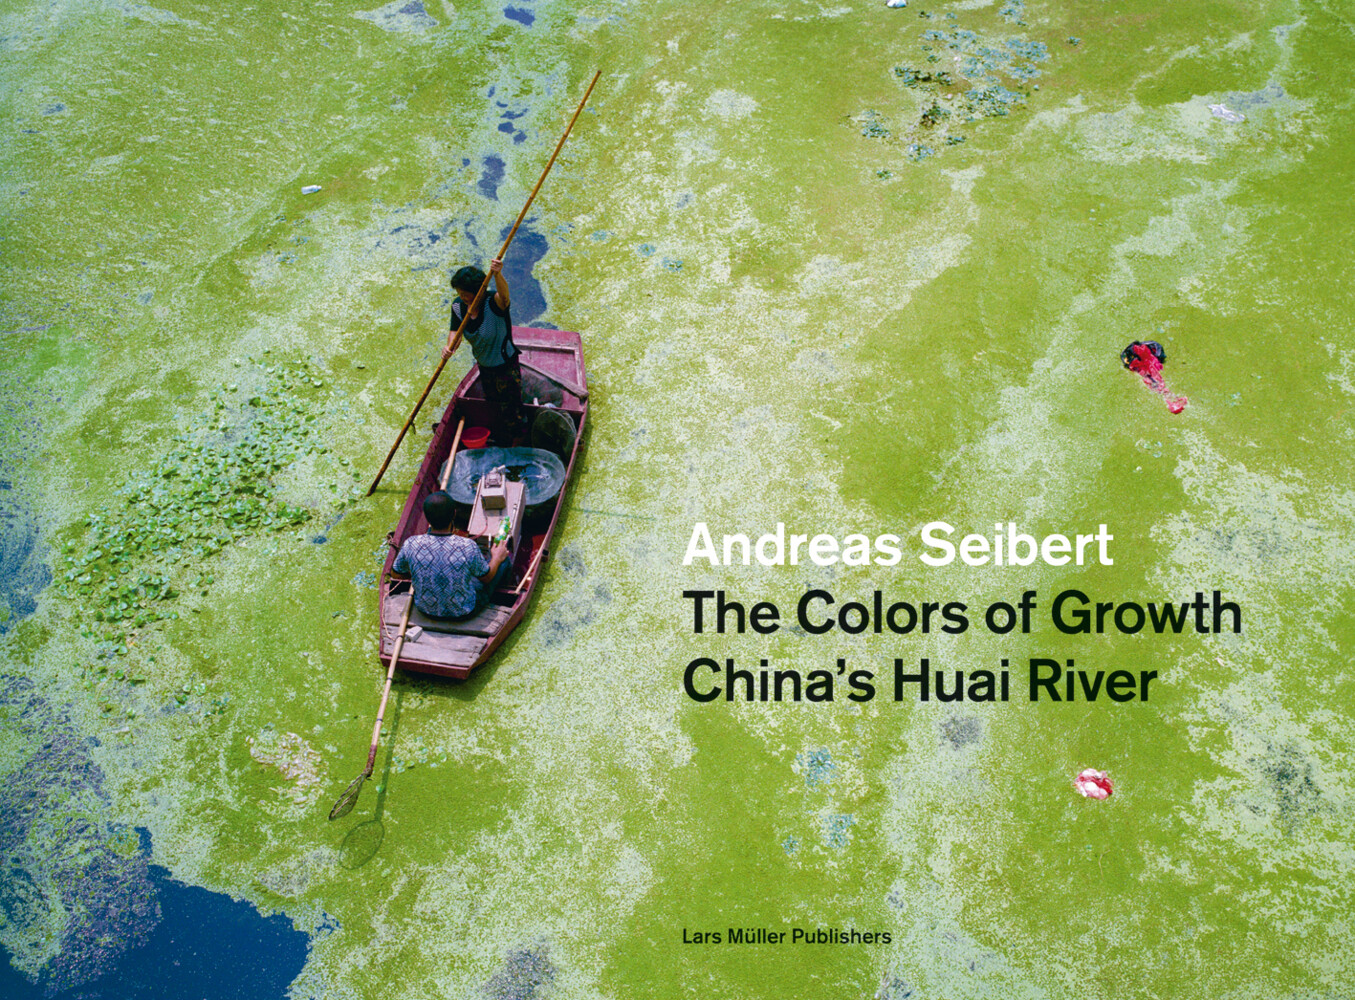 The Colors of Growth als Buch von Andreas Seibert